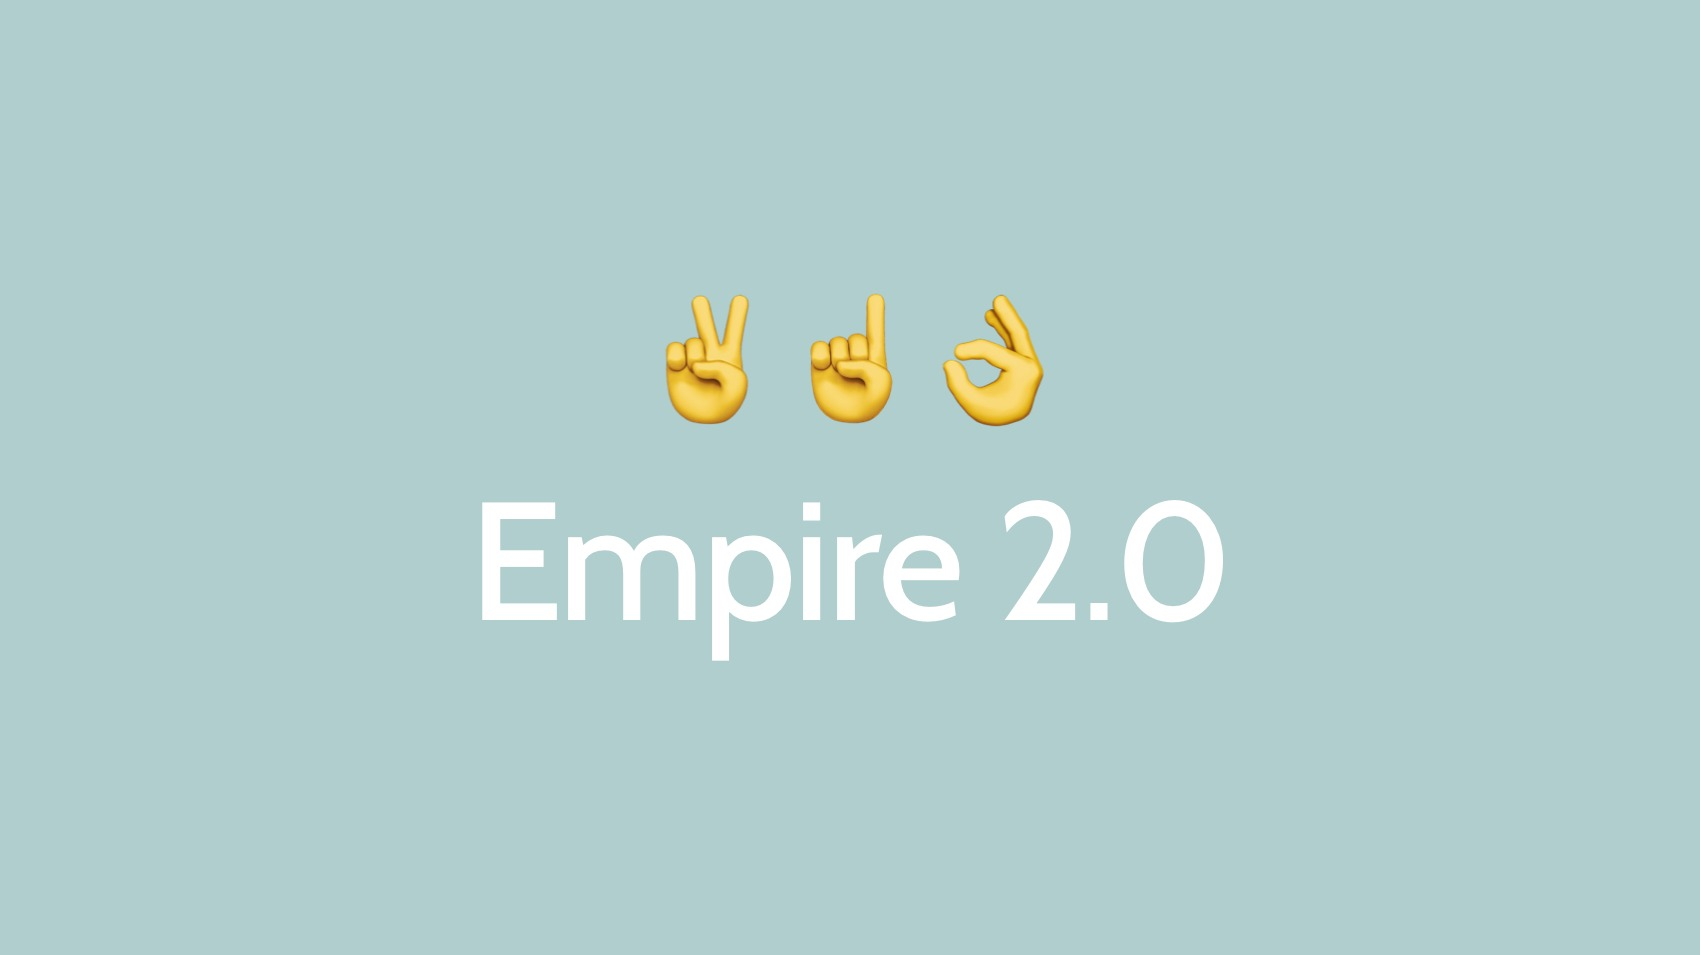 Empire 2.0: Now with even more features and flexibility